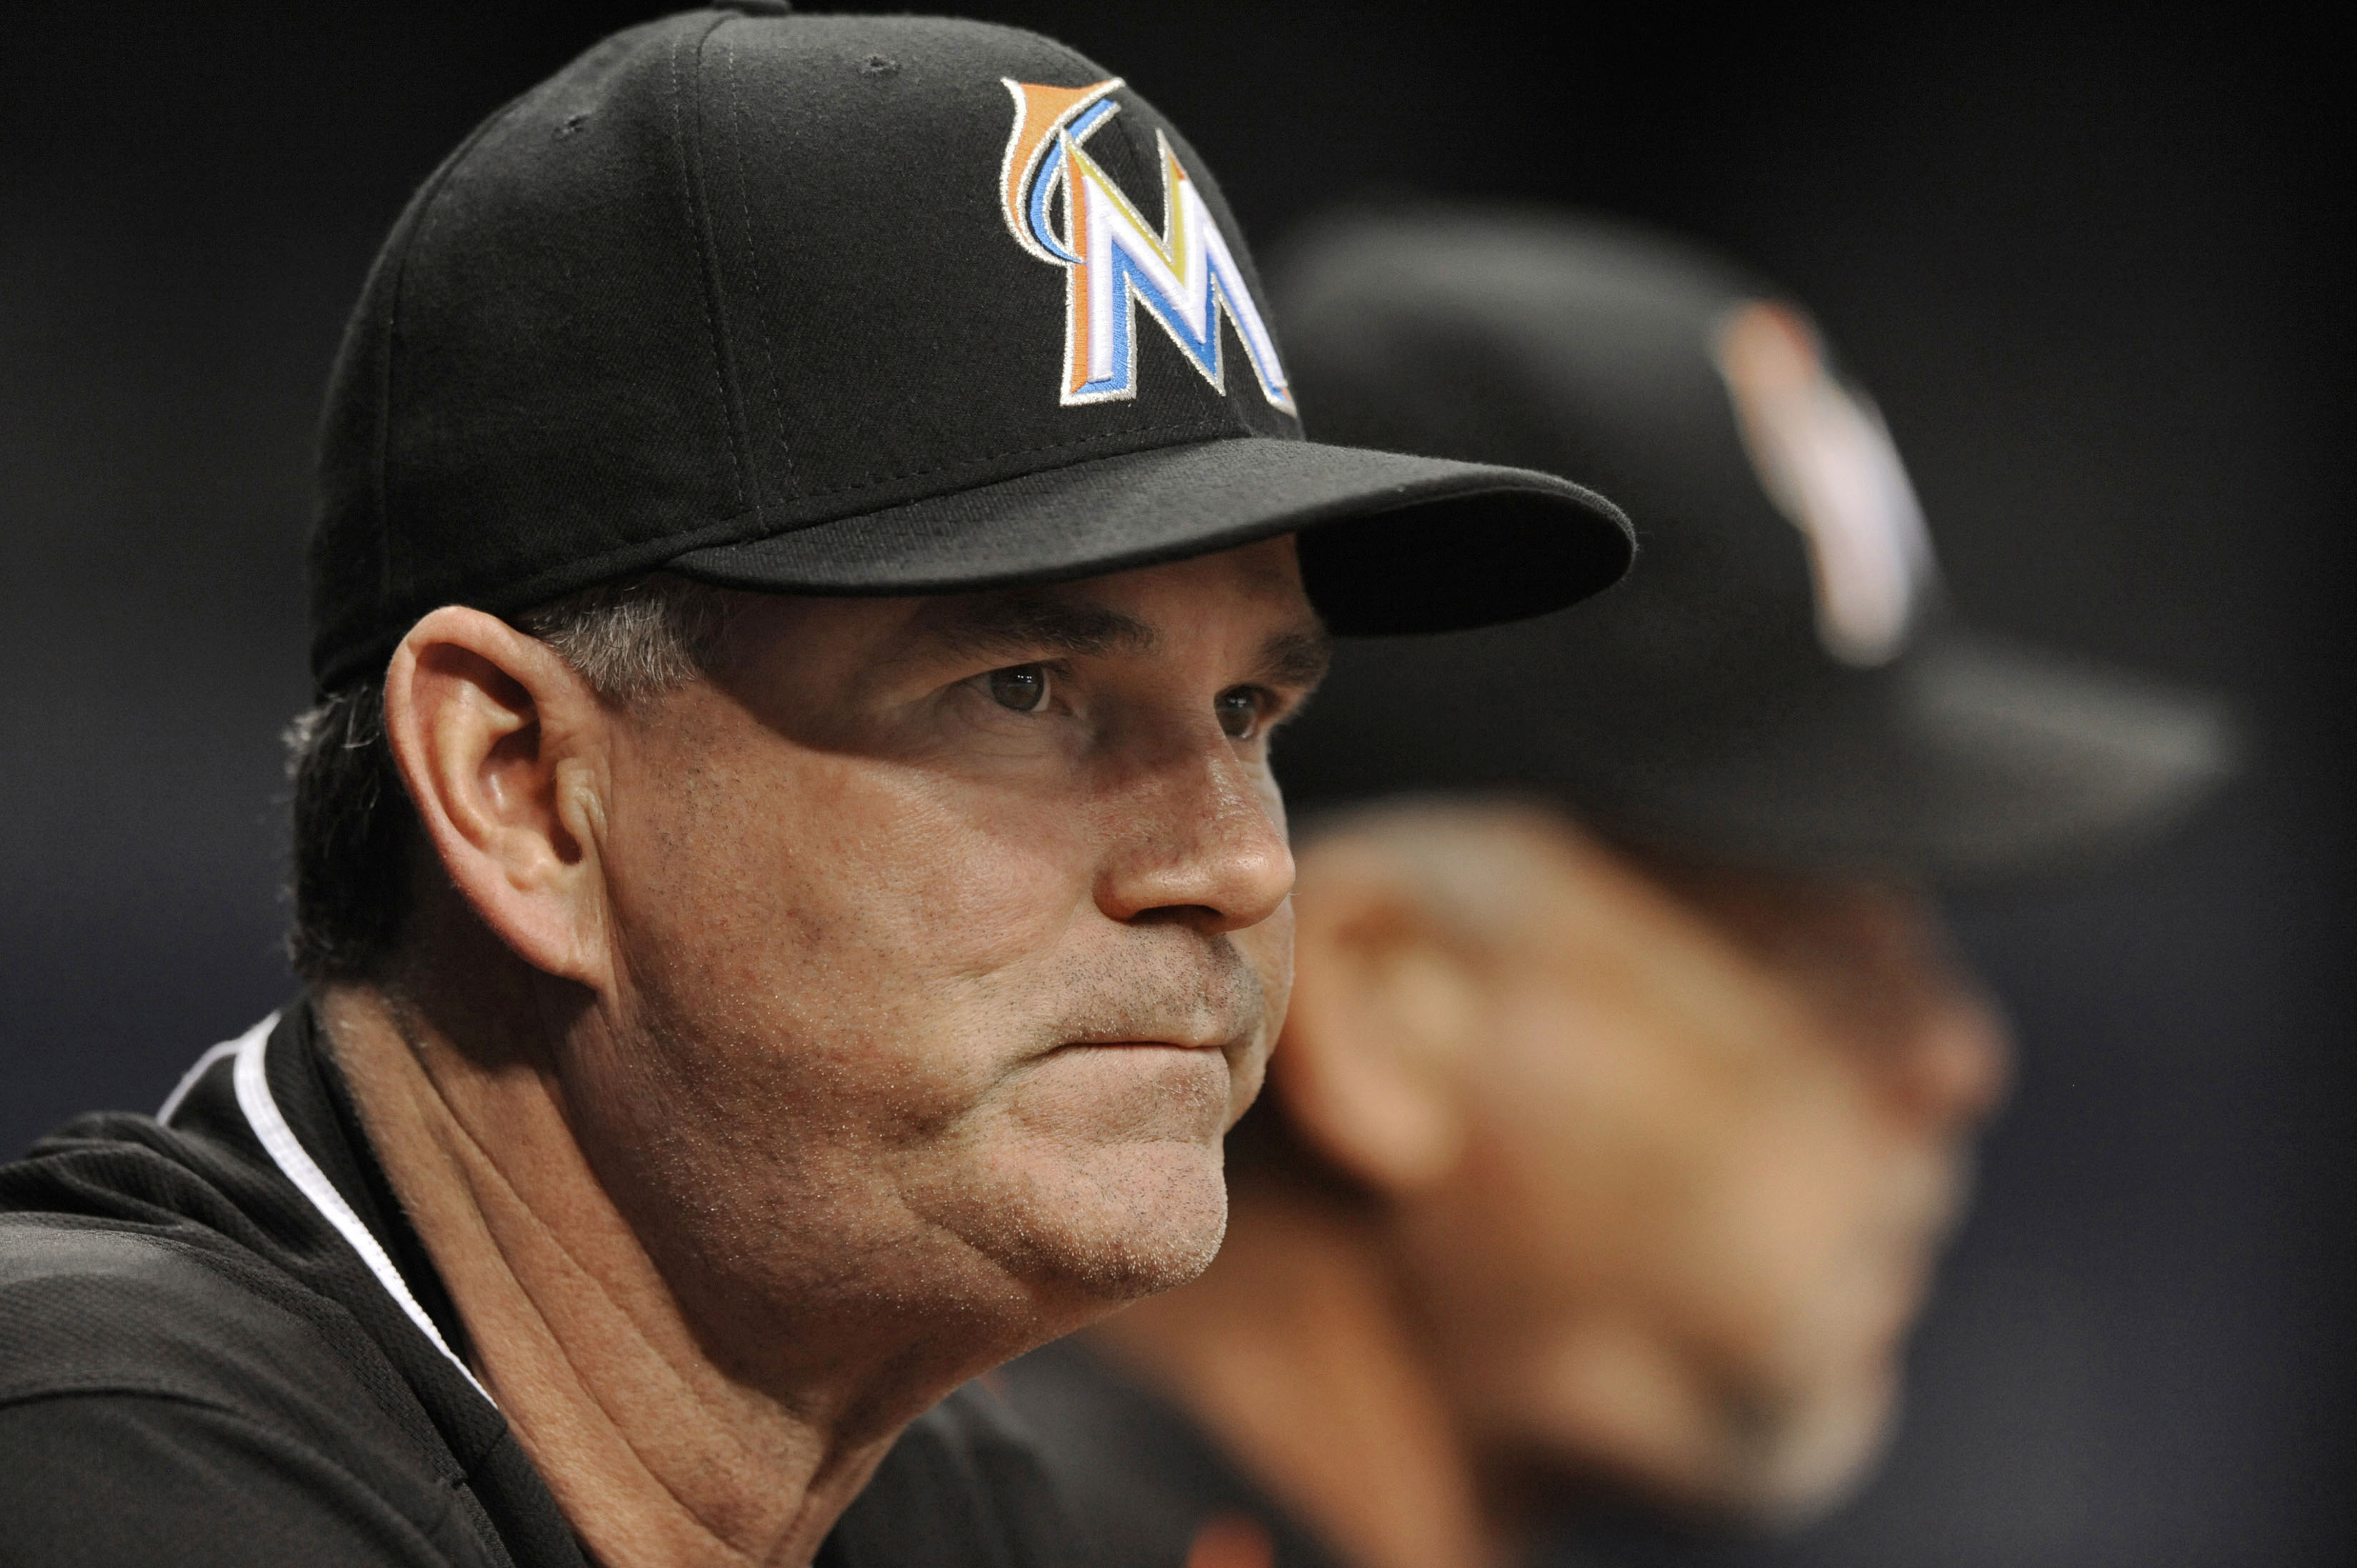 FILE - In this Oct. 1, 2015 file photo, then-Miami Marlins manager Dan Jennings, left, watches his team play the Tampa Bay Rays during the first inning of a baseball game in St. Petersburg, Fla. The Washington Nationals have added Jennings to their front